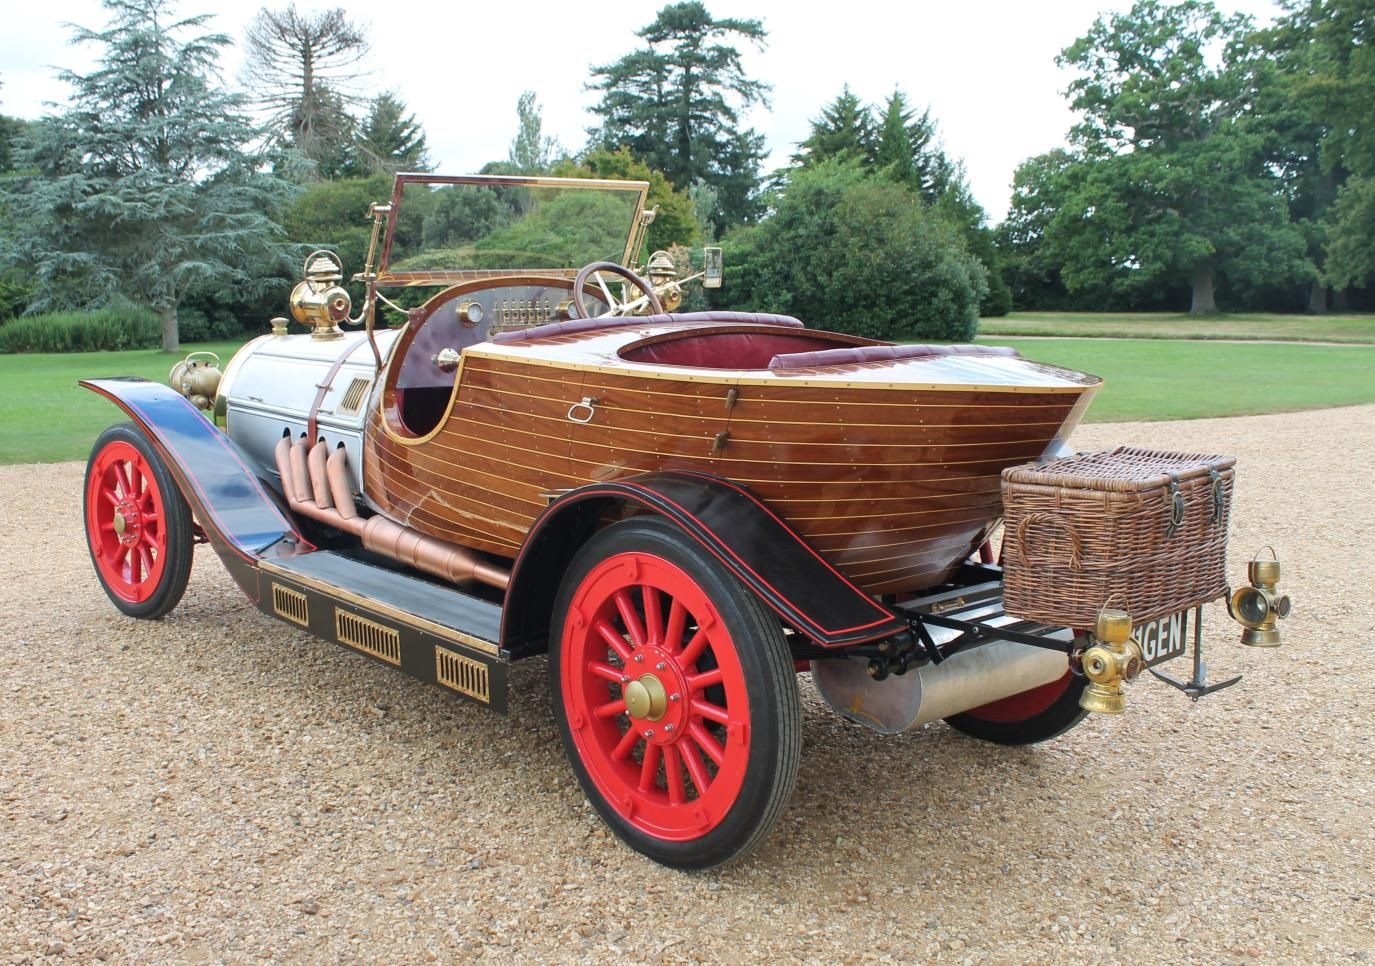 Chitty reconstruction flies into Beaulieu for summer holidays 1